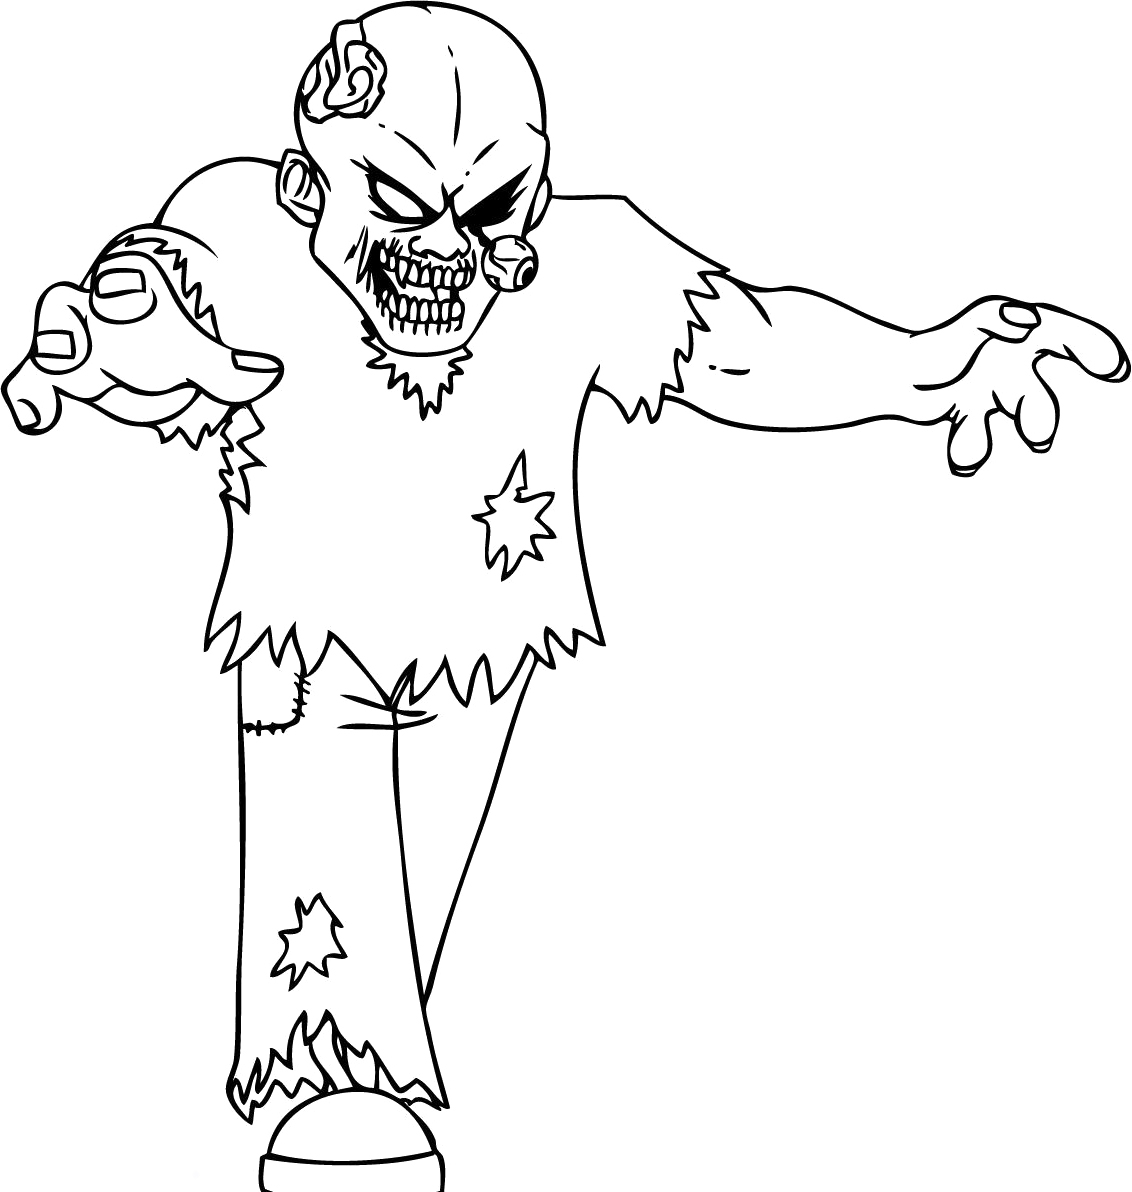 free printable zombie coloring pages - Zombie Coloring Pages